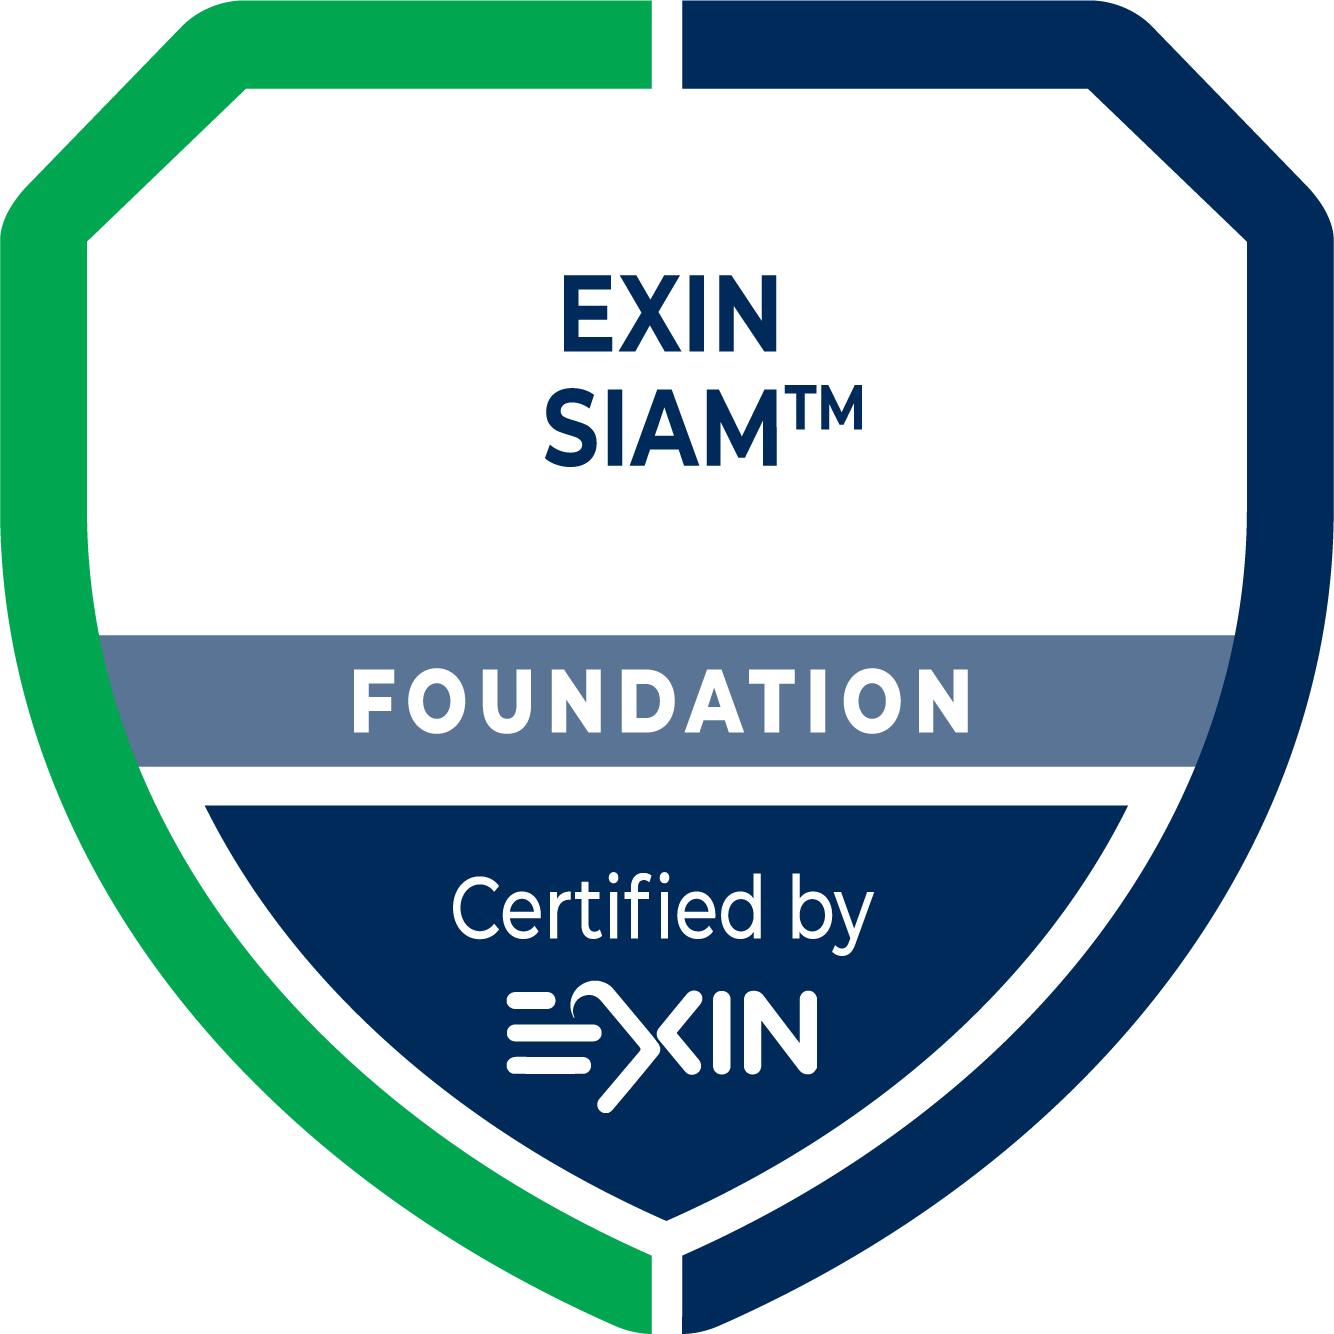 EXIN Foundation SIAM